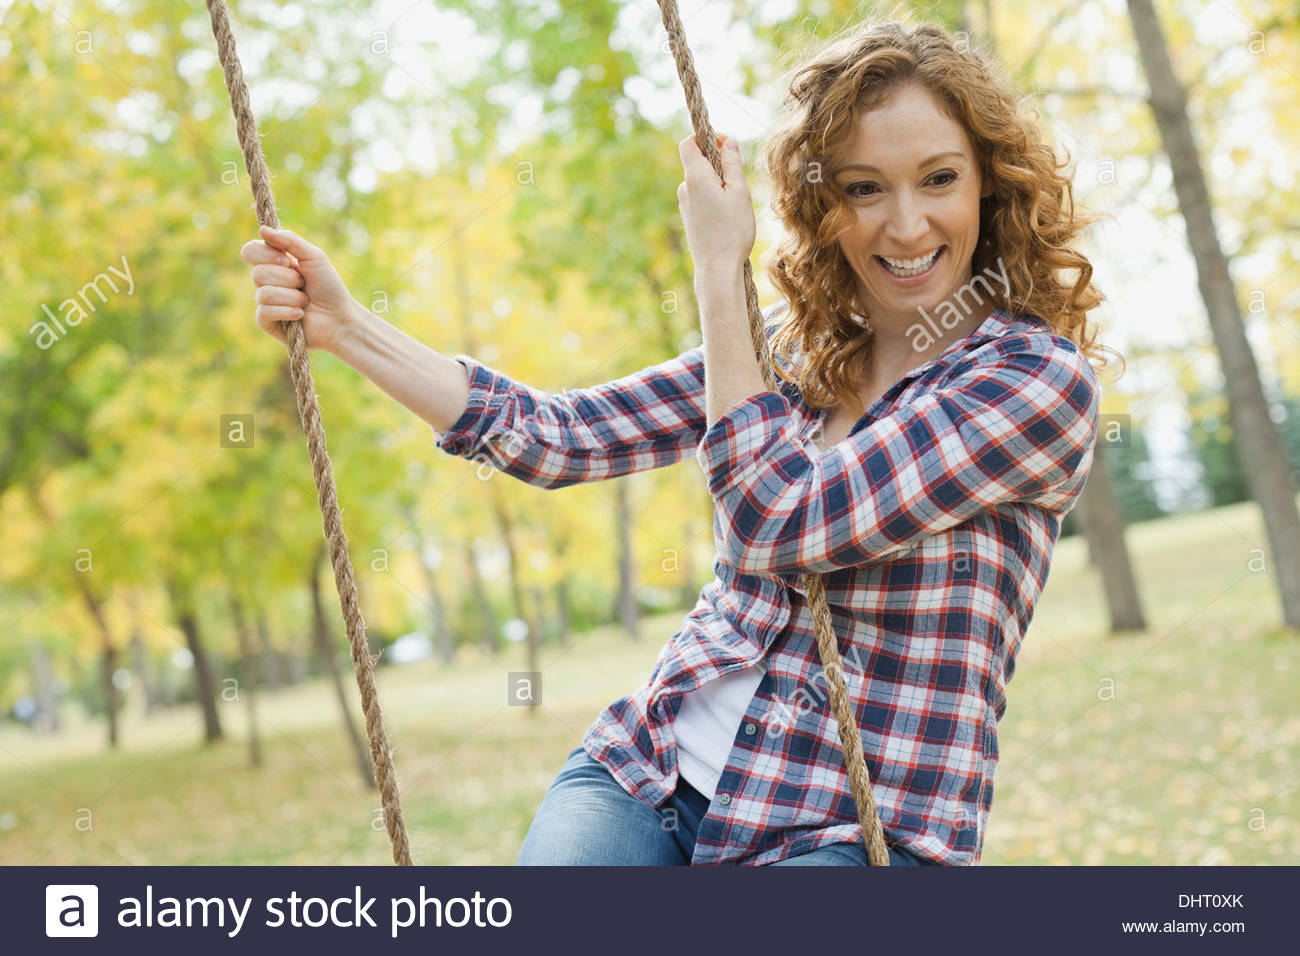 Happy mid adult woman swinging at park - Stock Image